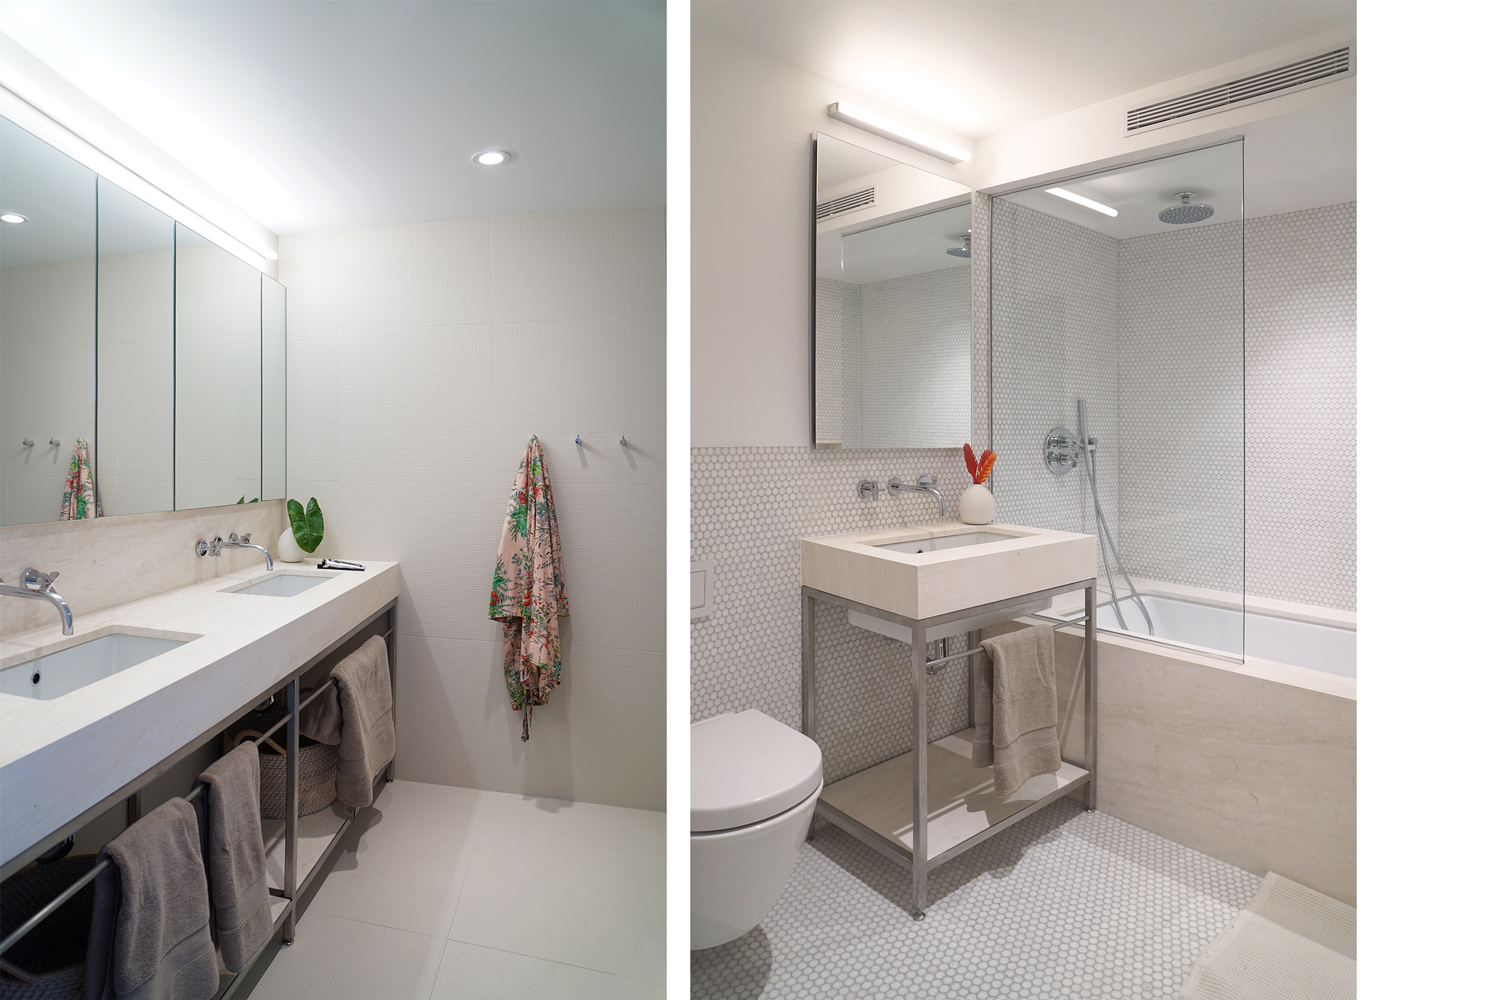 Downtown-Loft-Collage-Two-Bathrooms.jpg